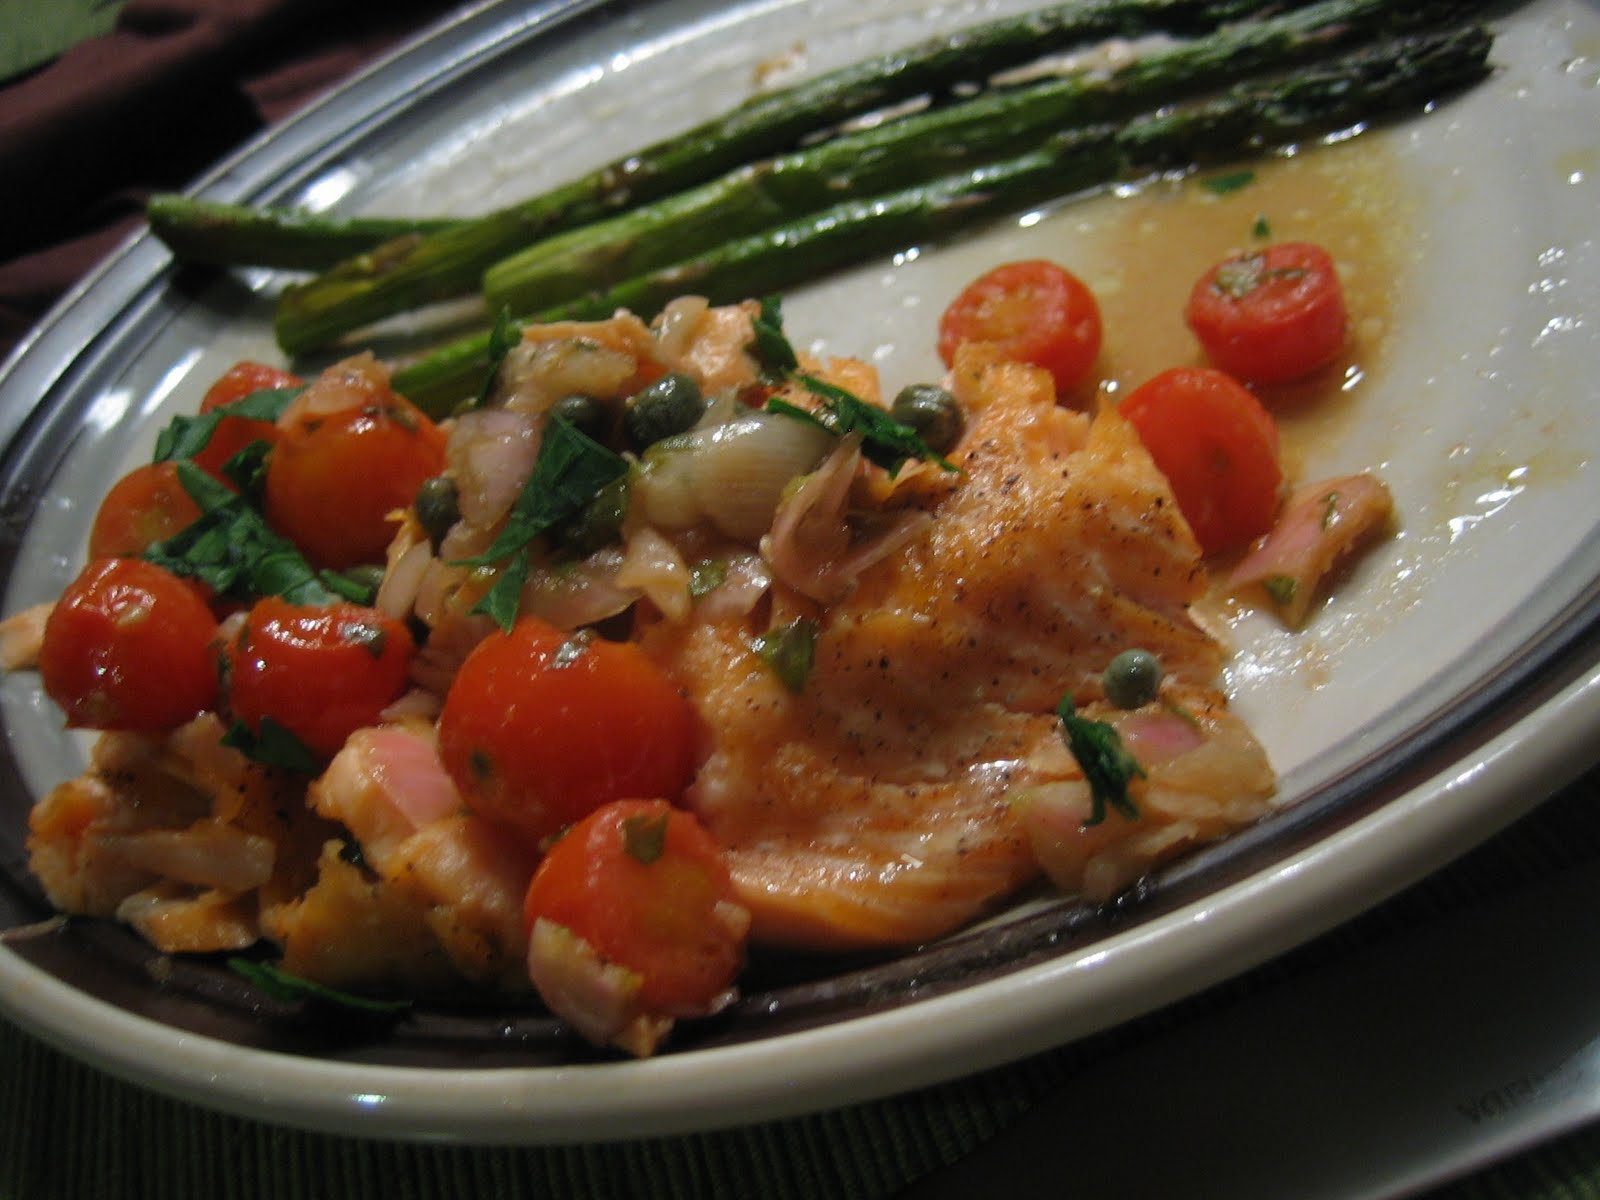 Baked Salmon with Tomato-Caper Sauce